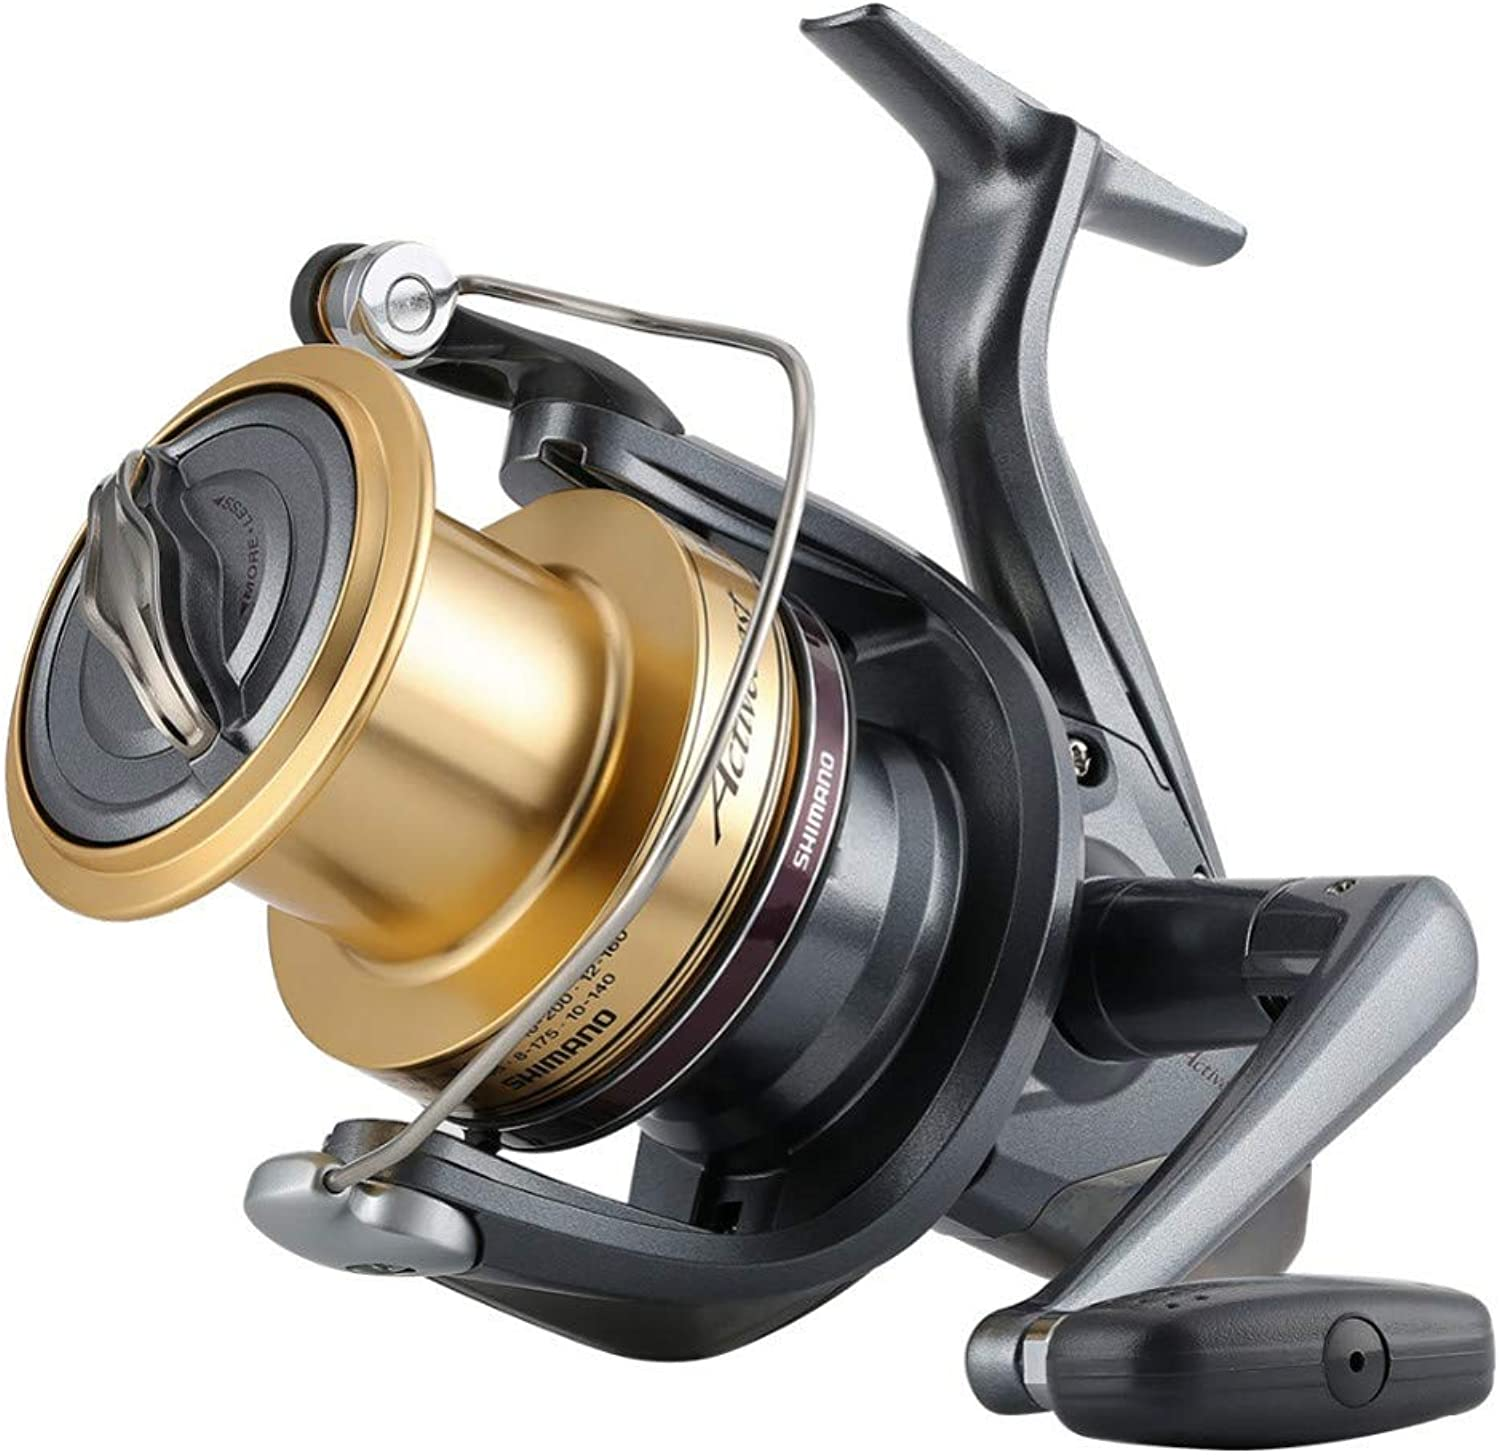 YXZTM Angelrolle 1060 1080 1100 Spinning Reel 5Bb 3.8 1 Max 15Kg Long Cast Saltwater Casting Fishing Tackle